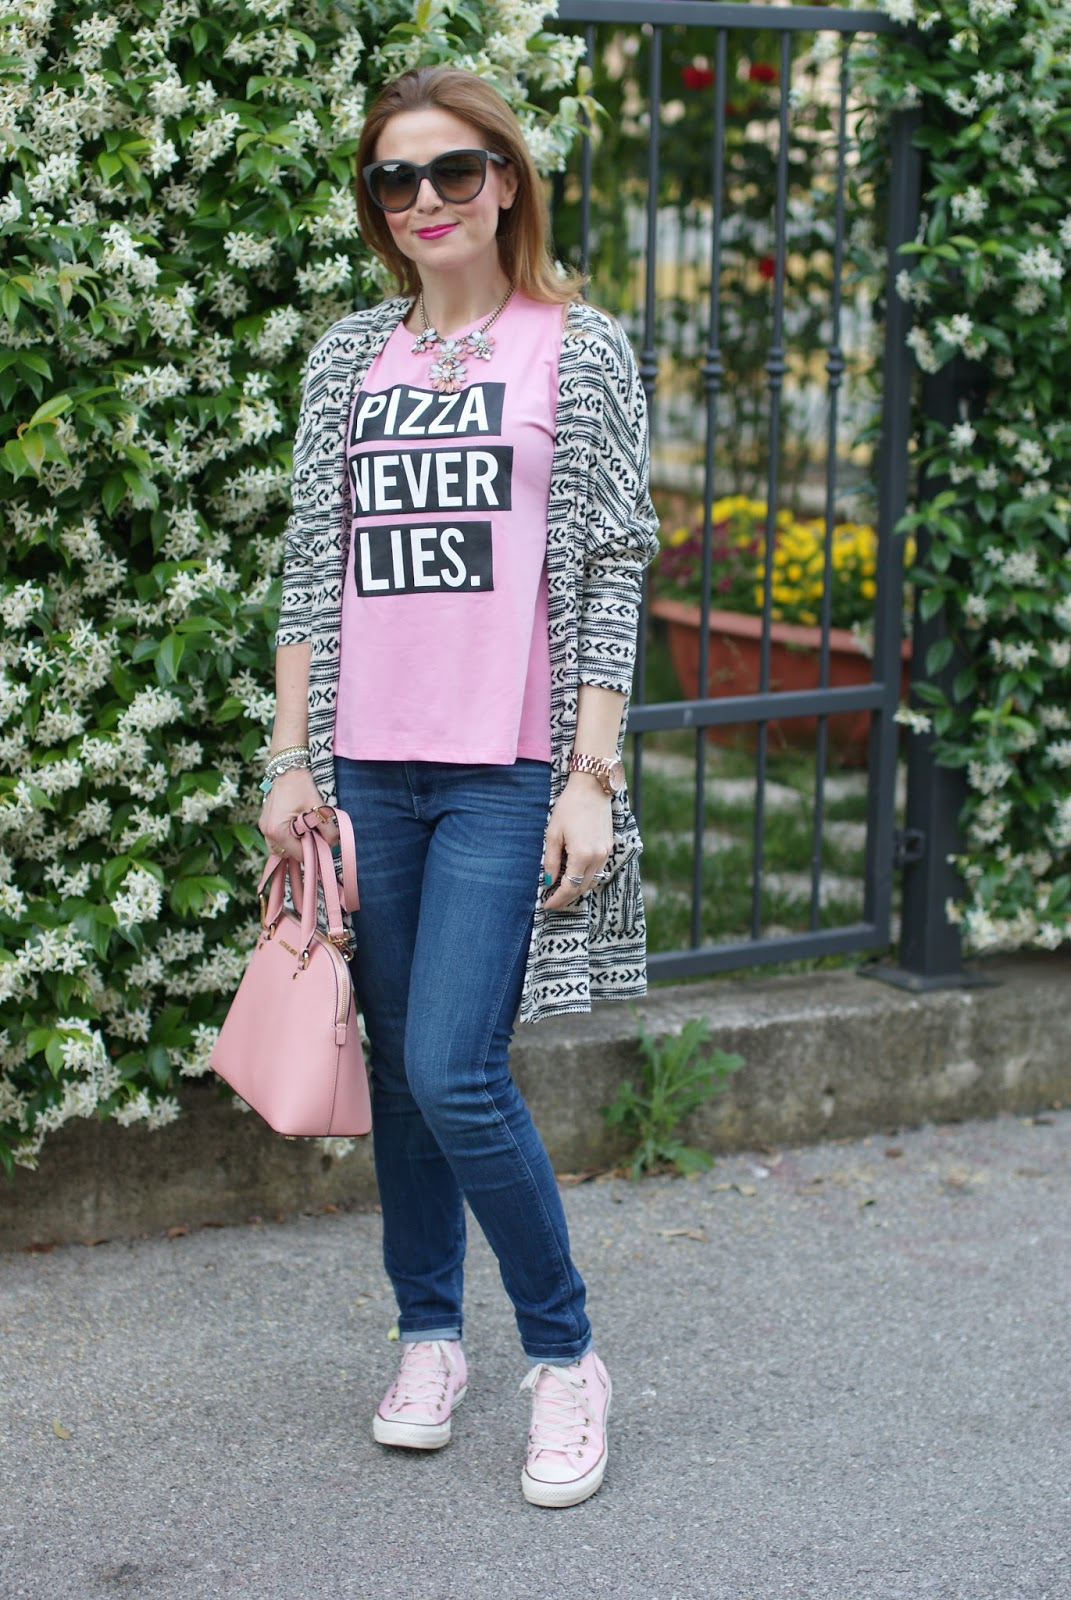 Pizza never lies, pink casual look, Zaful pink t-shirt, Zaful pizza never lies, casual pink look on Fashion and Cookies fashion blog, fashion blogger style